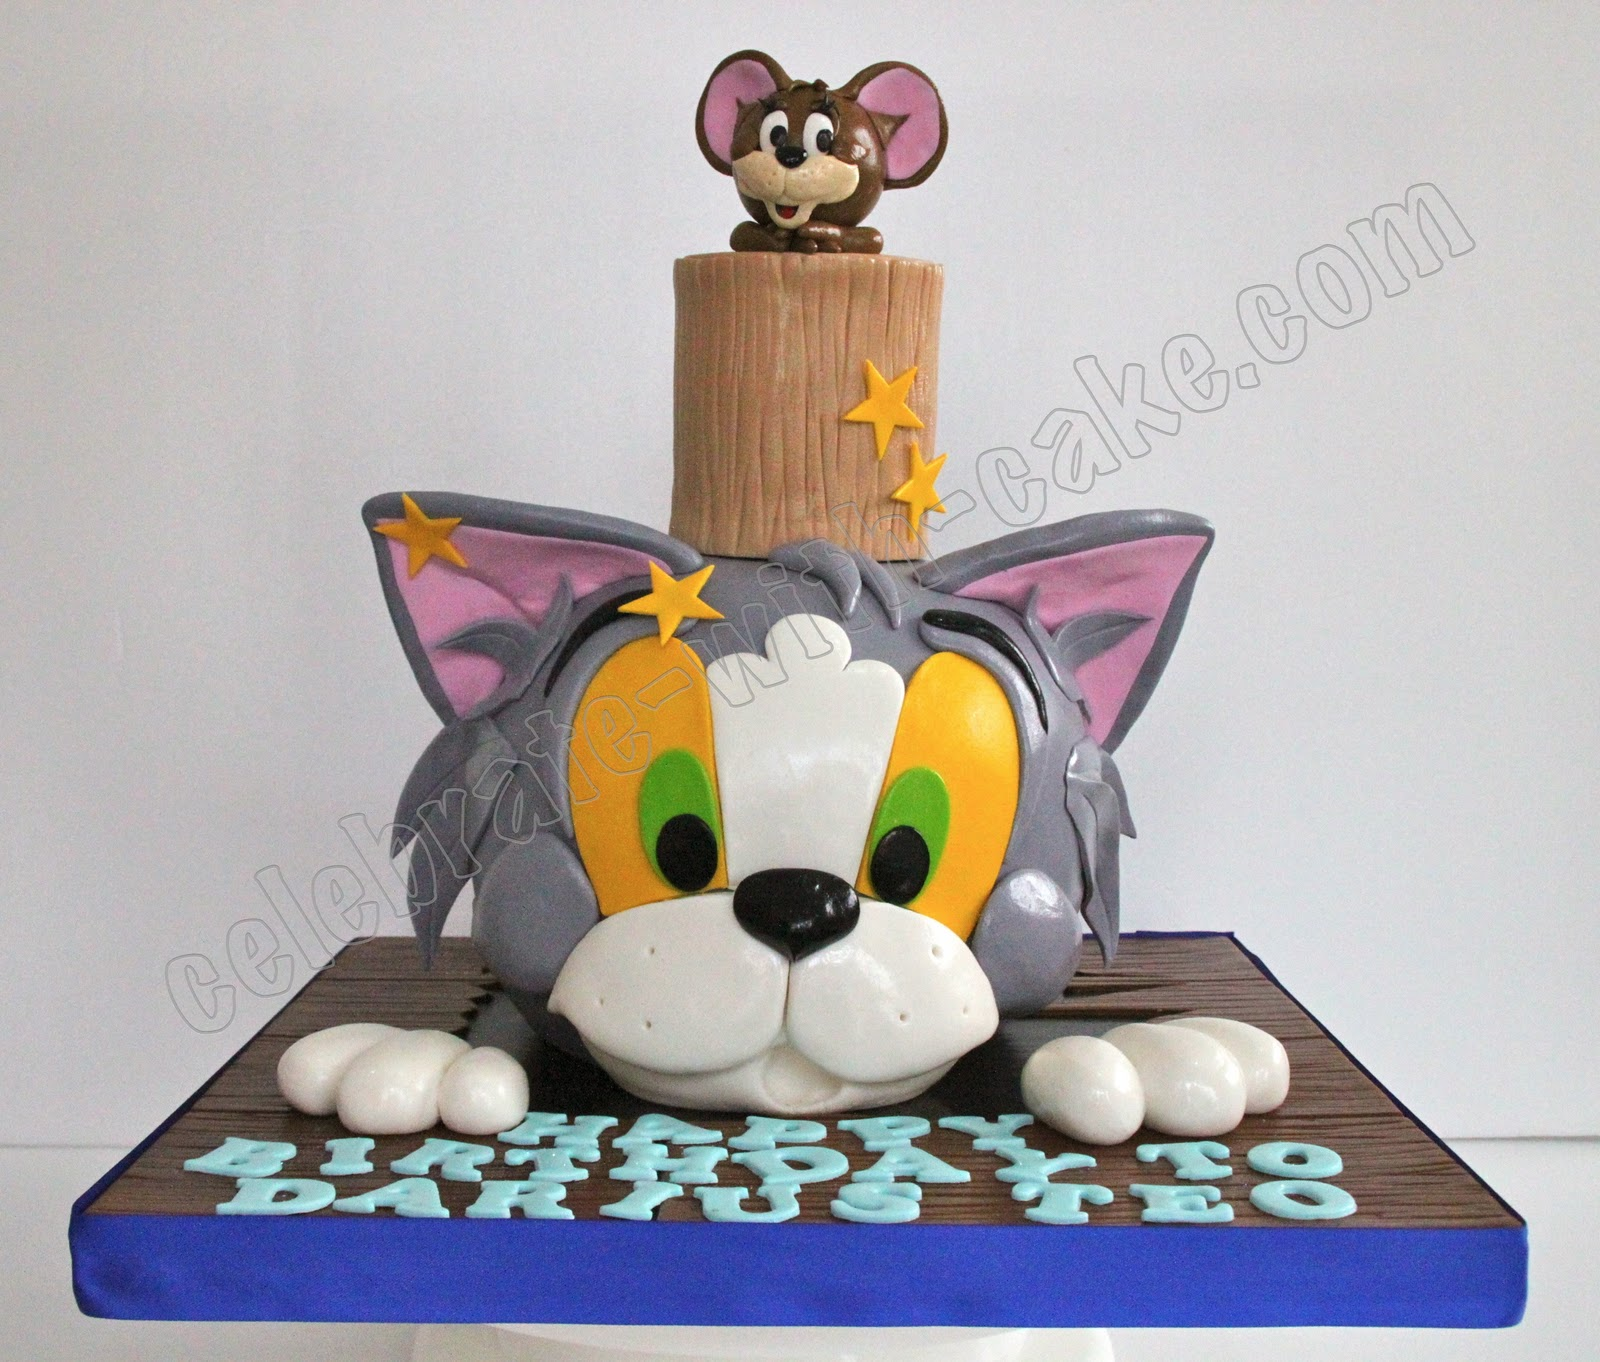 Celebrate With Cake Tom Jerry Cake